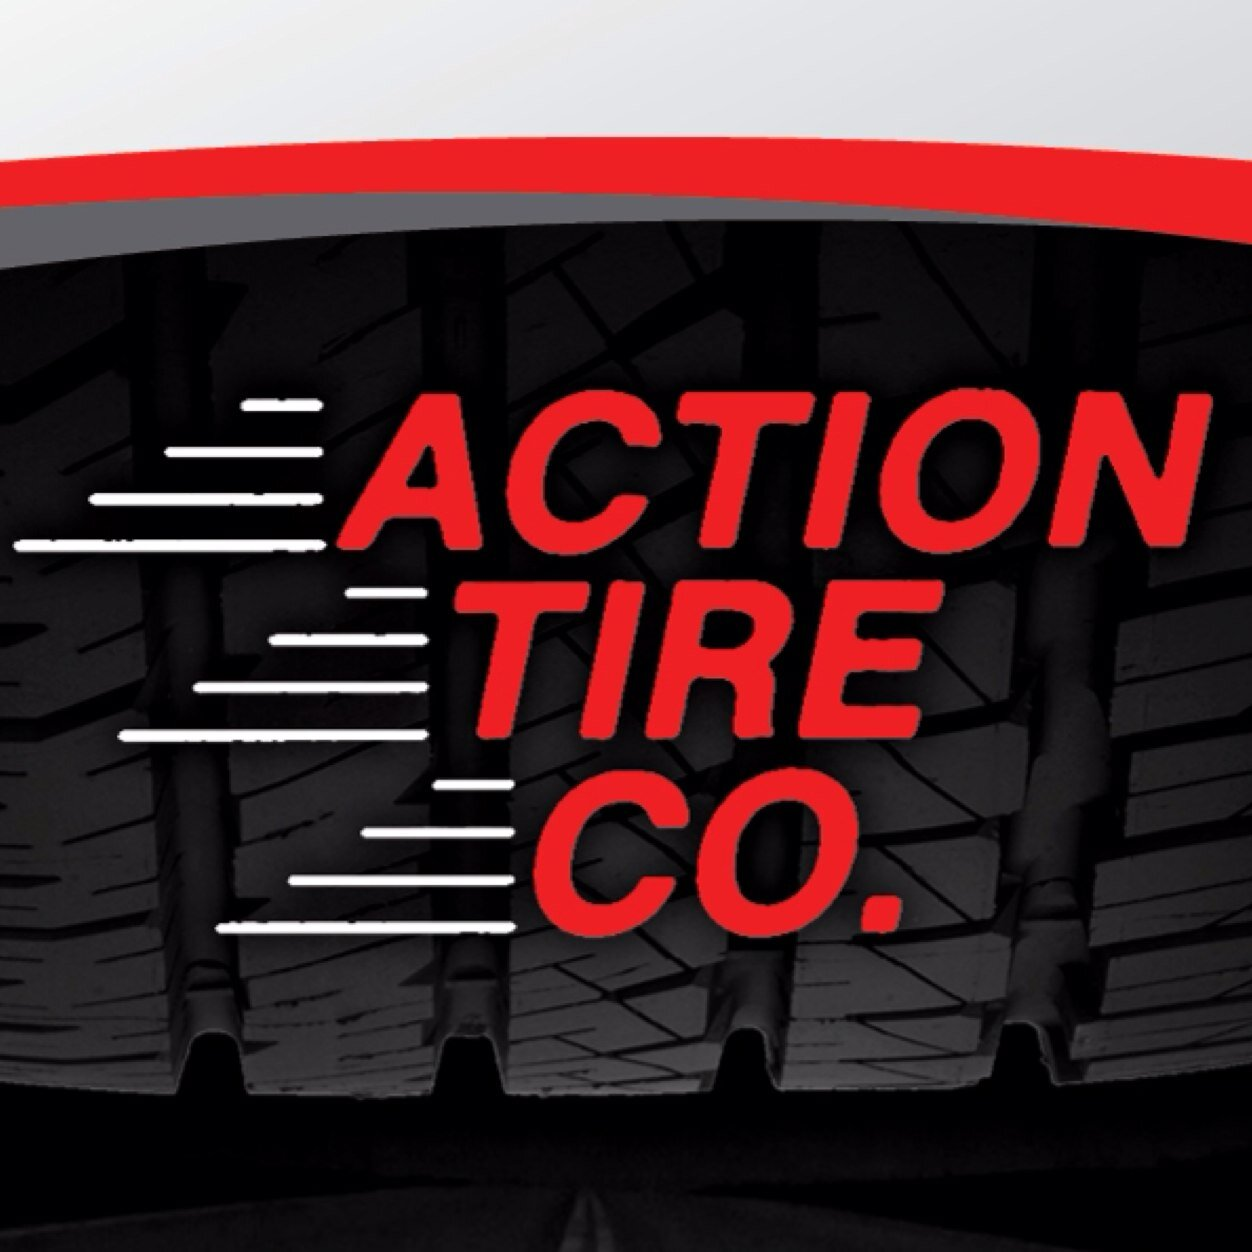 action tire company atactiontireco twitter